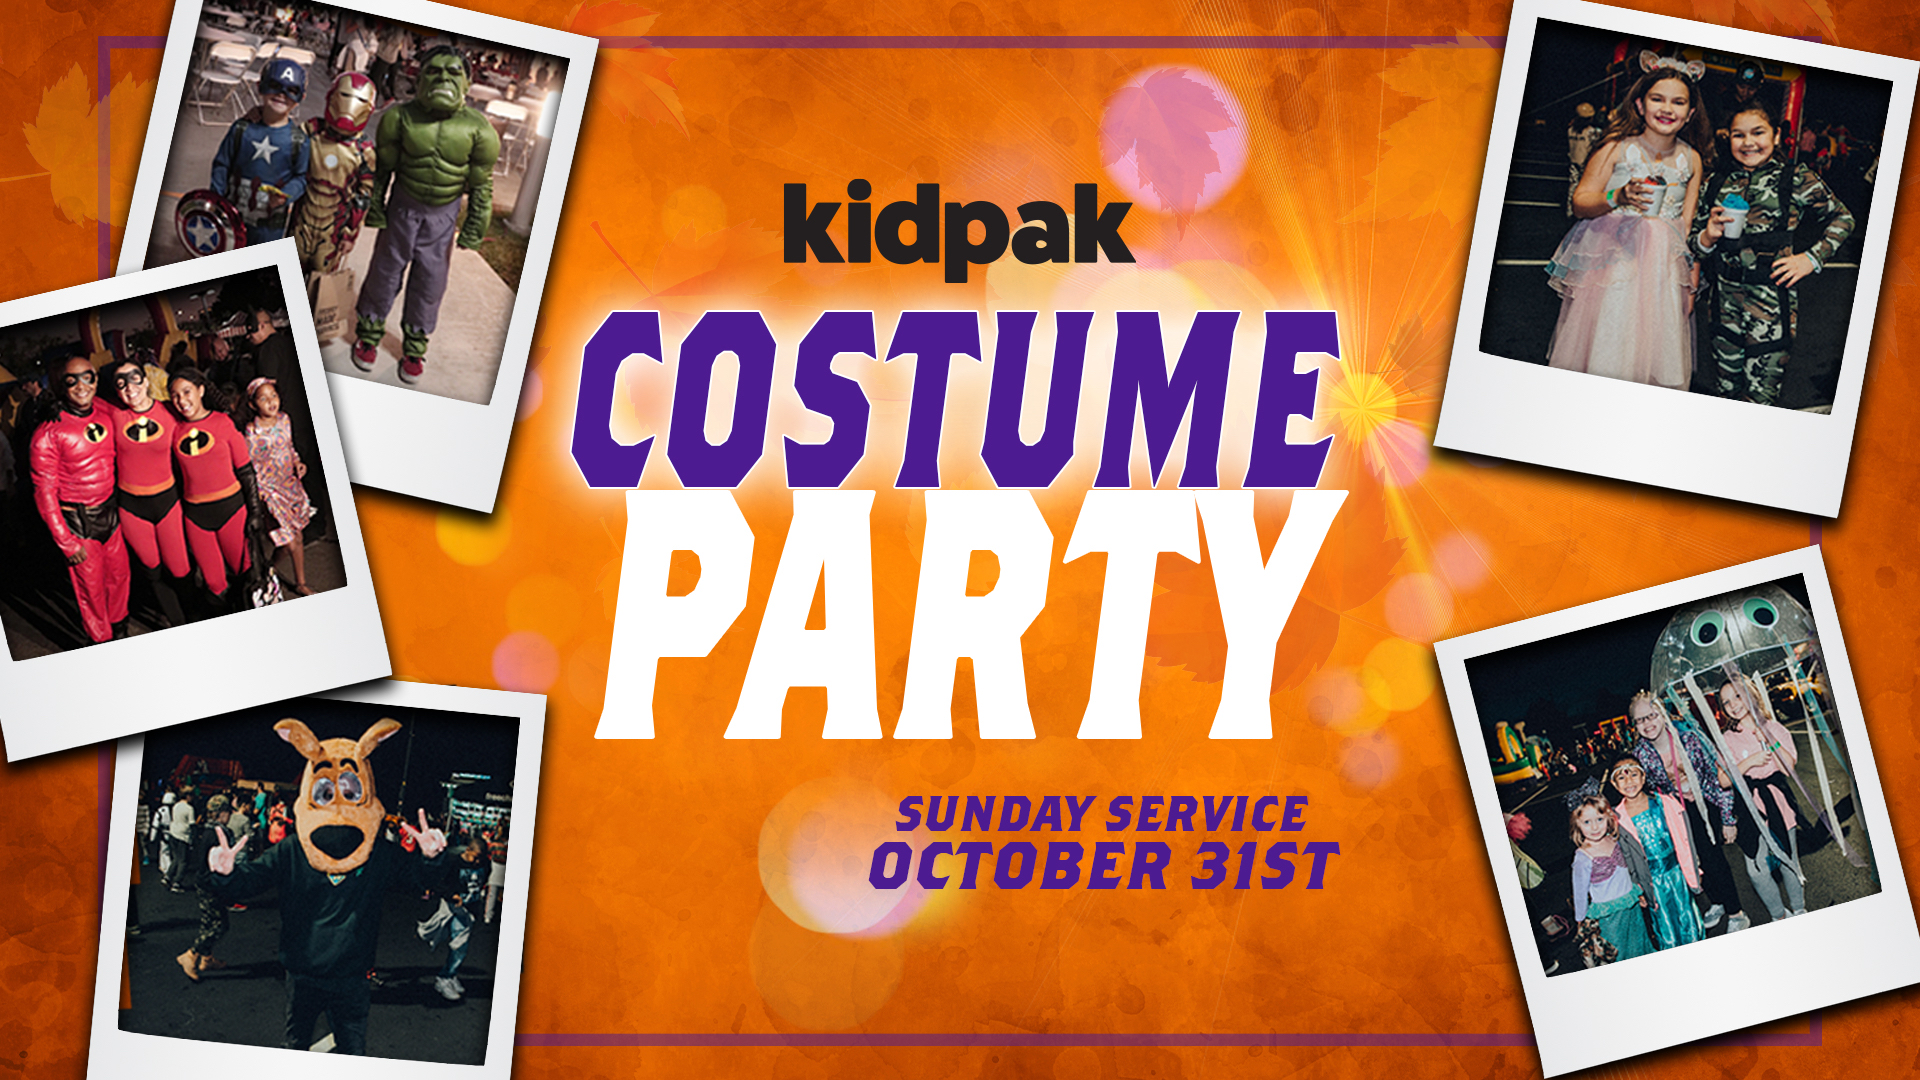 KidPak Costume Party at the Midtown campus